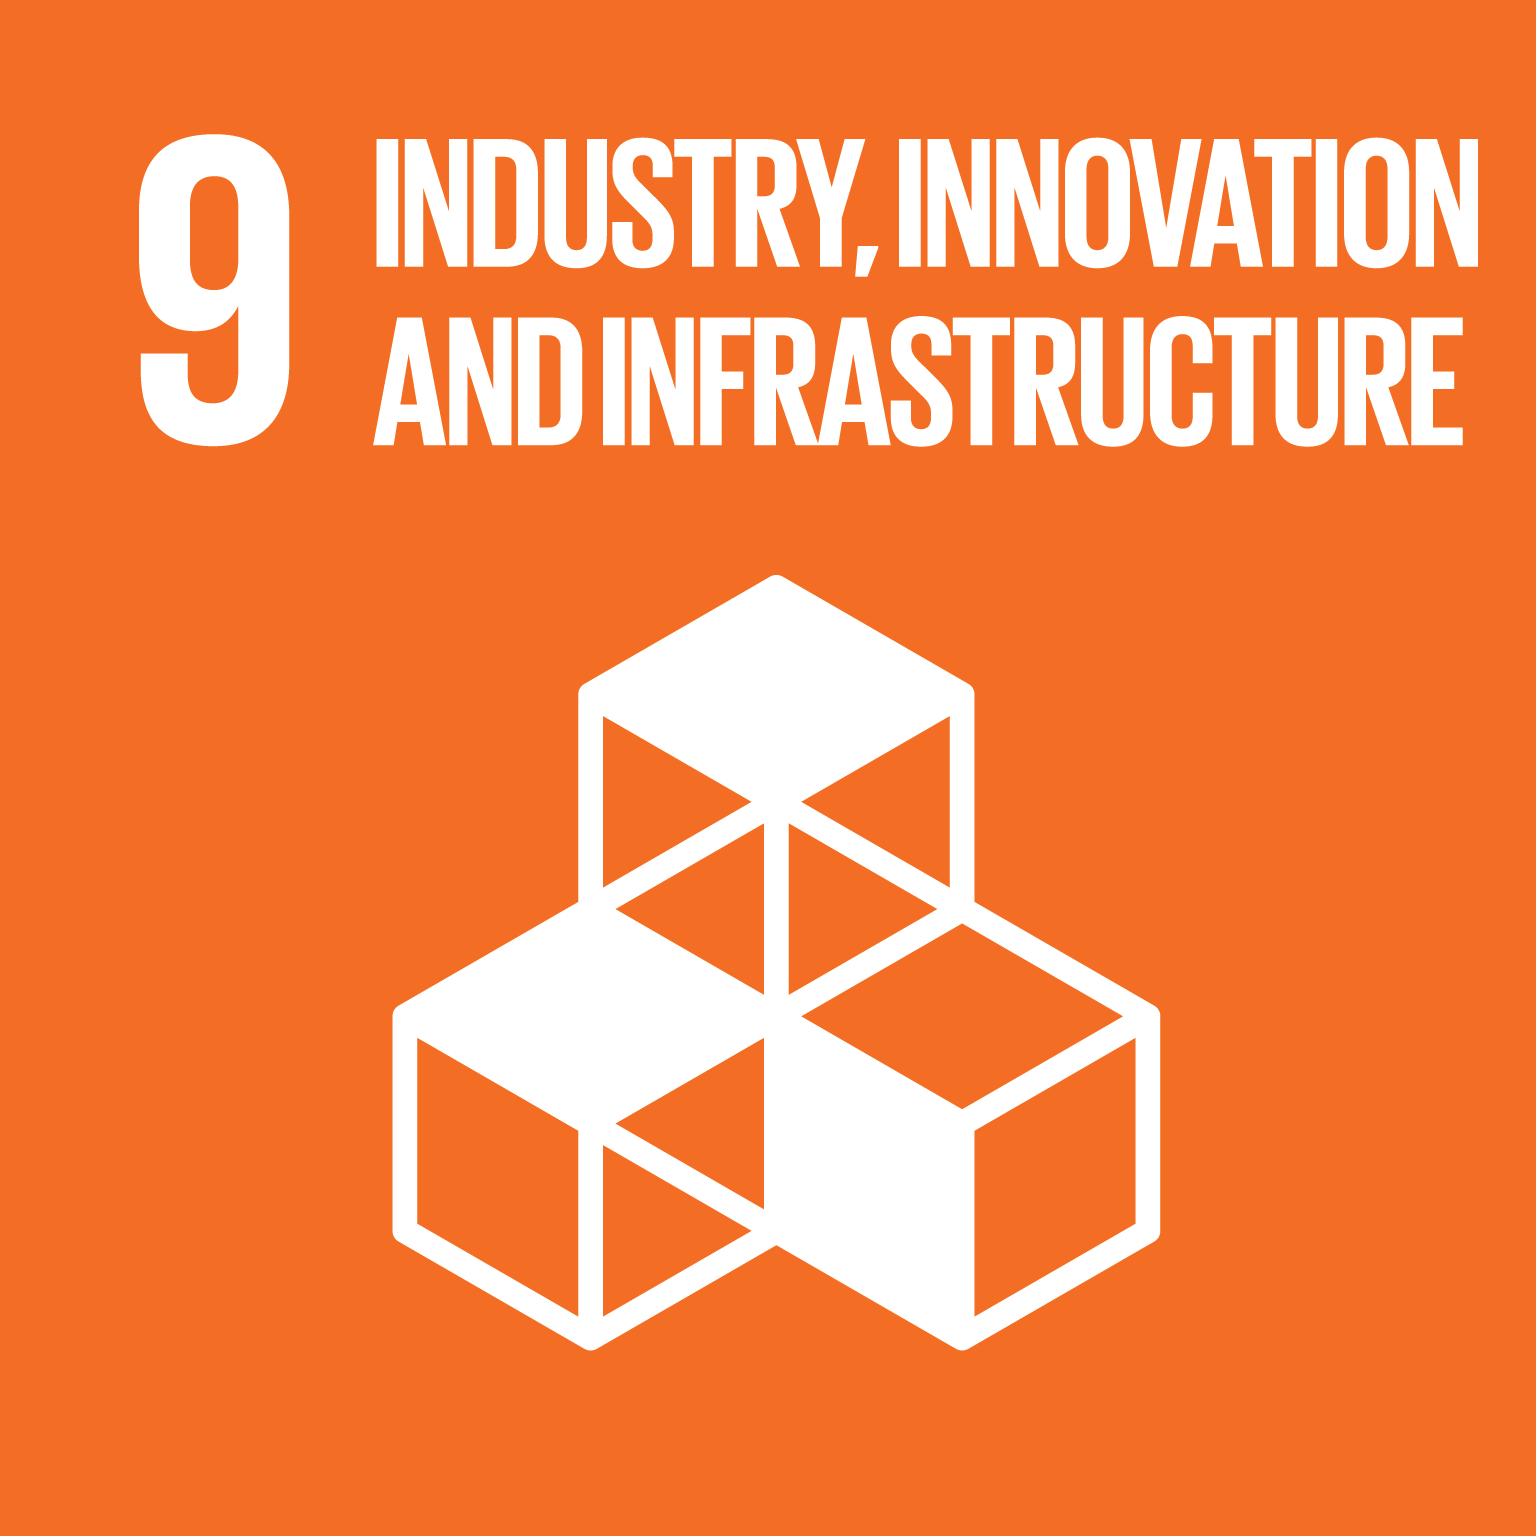 09 Industry, innovation and infrastructure